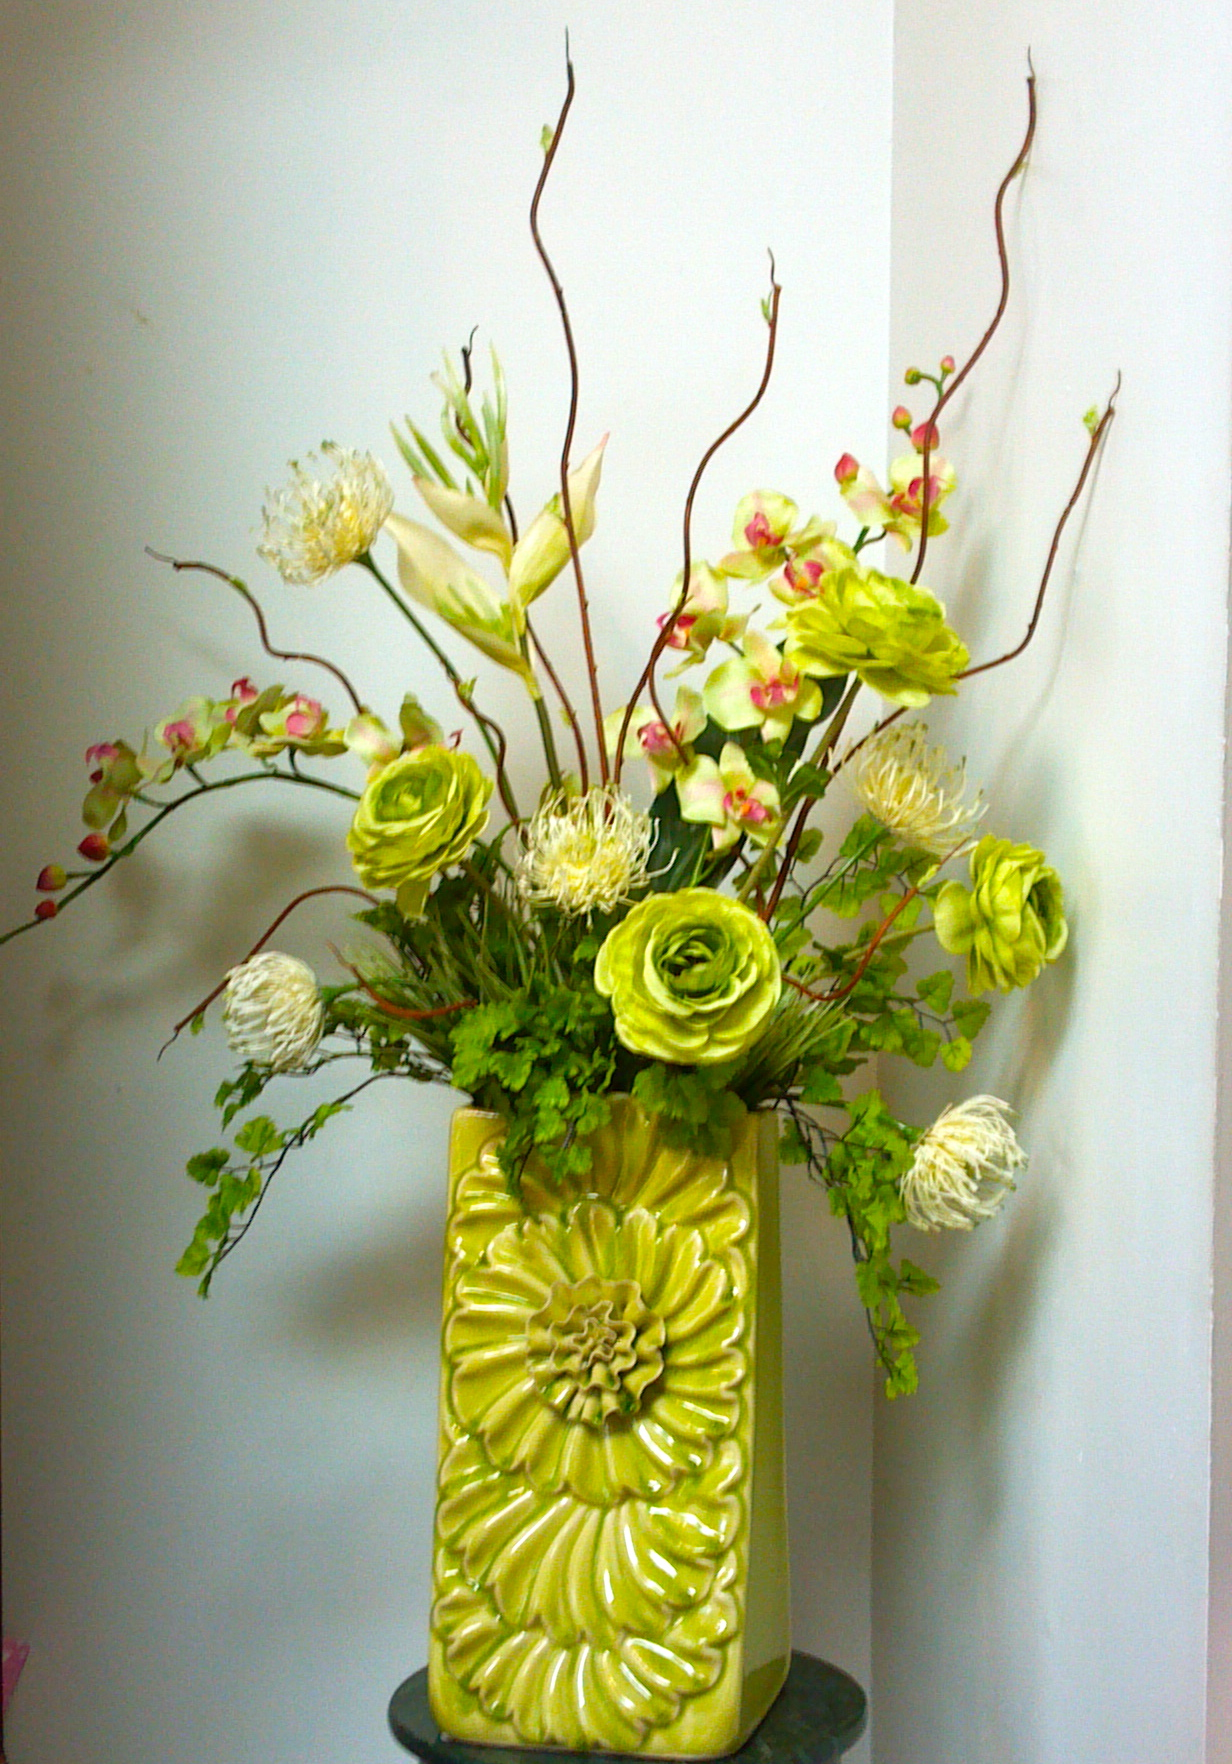 Fruit of the spirit floral designs artist feature Floral creations